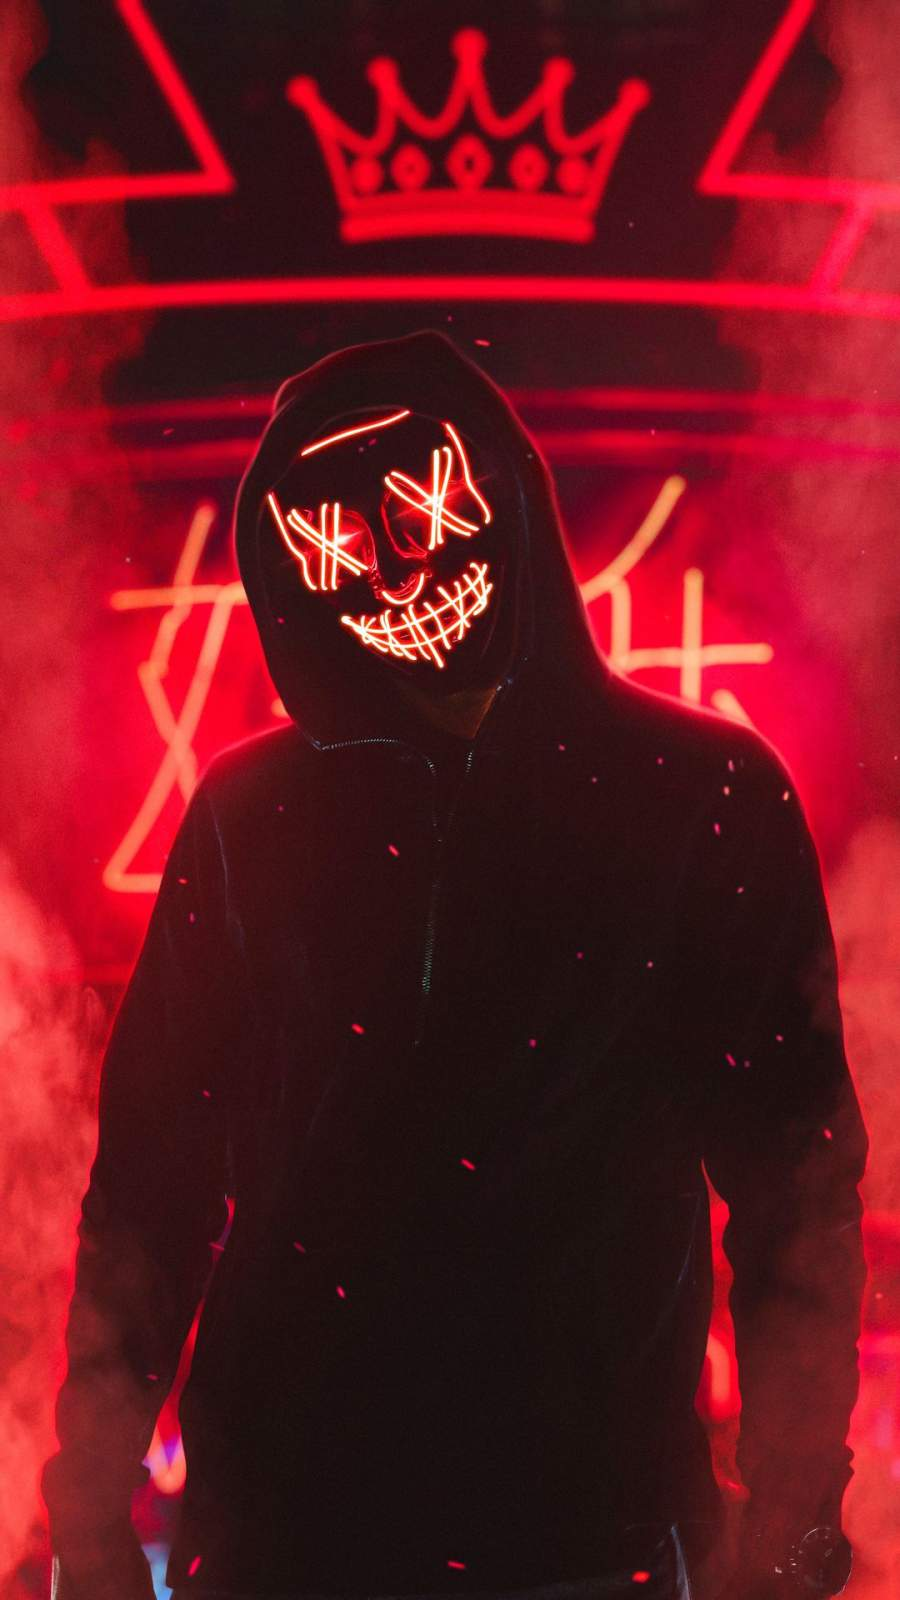 Neon Stitched Mask Guy iPhone Wallpaper